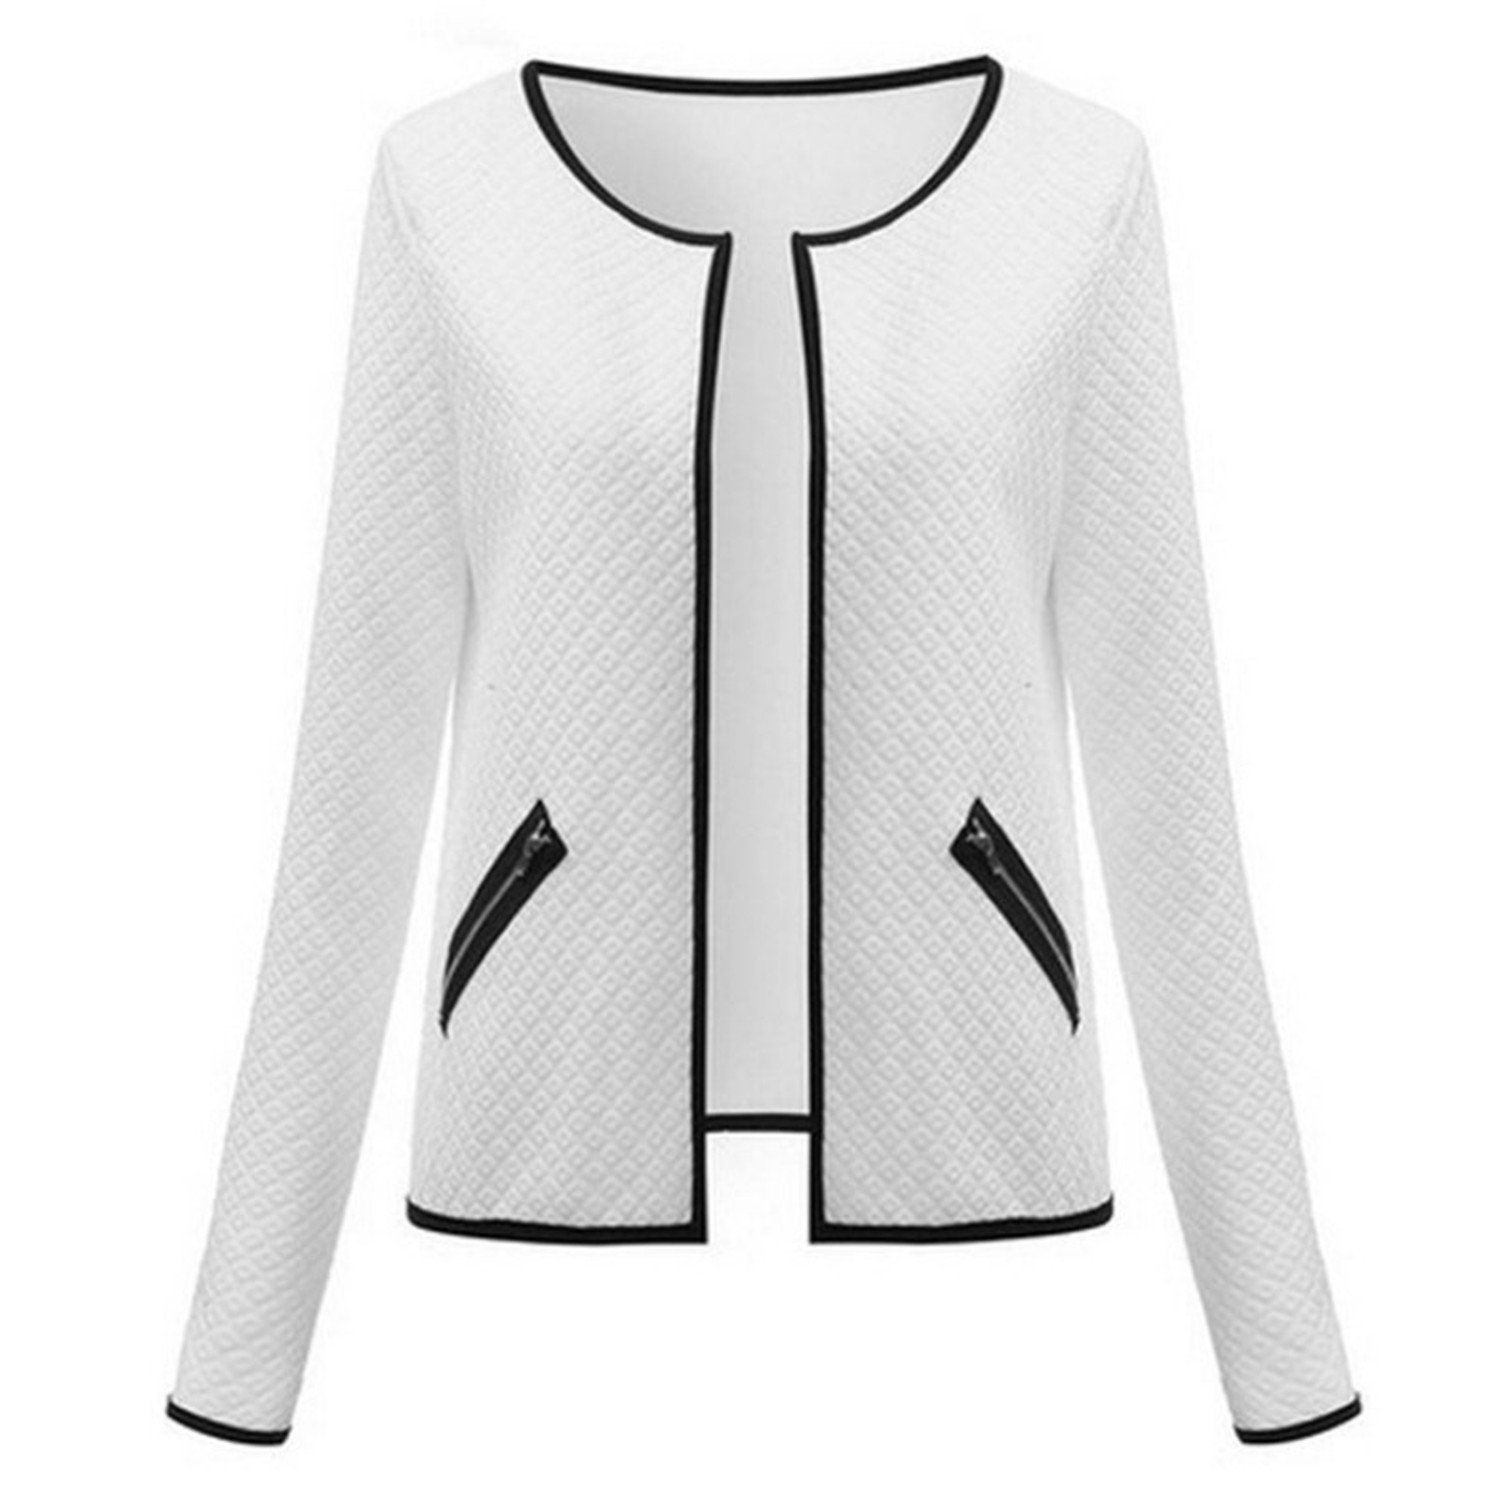 Fashion Women Coat Autumn Spring Long Sleeve Plus Cardigan Jacket Tops Outerwear